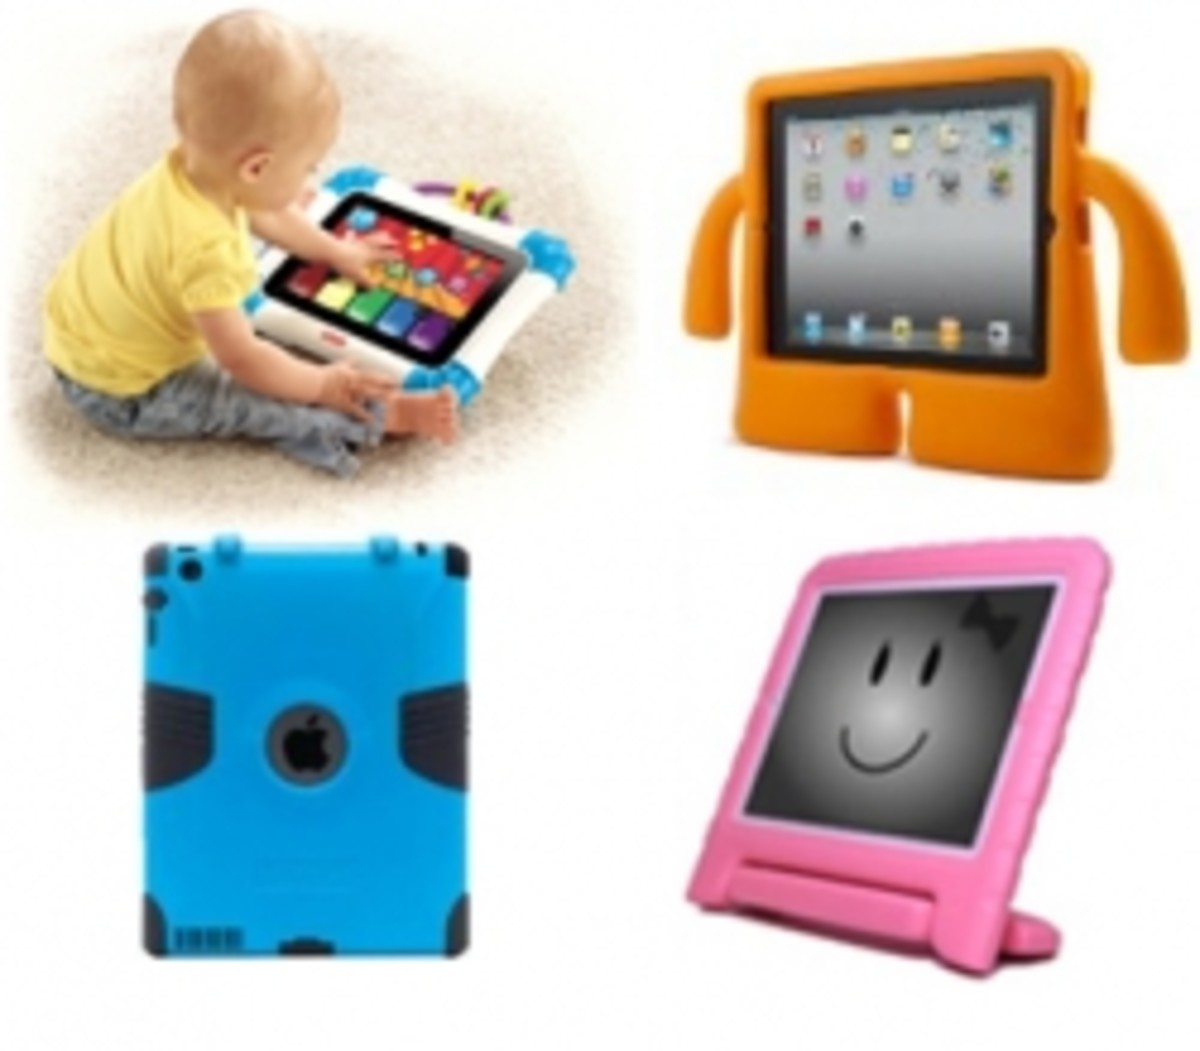 Toddler iPad Cases For Children - iPad Covers For Kids and Babies